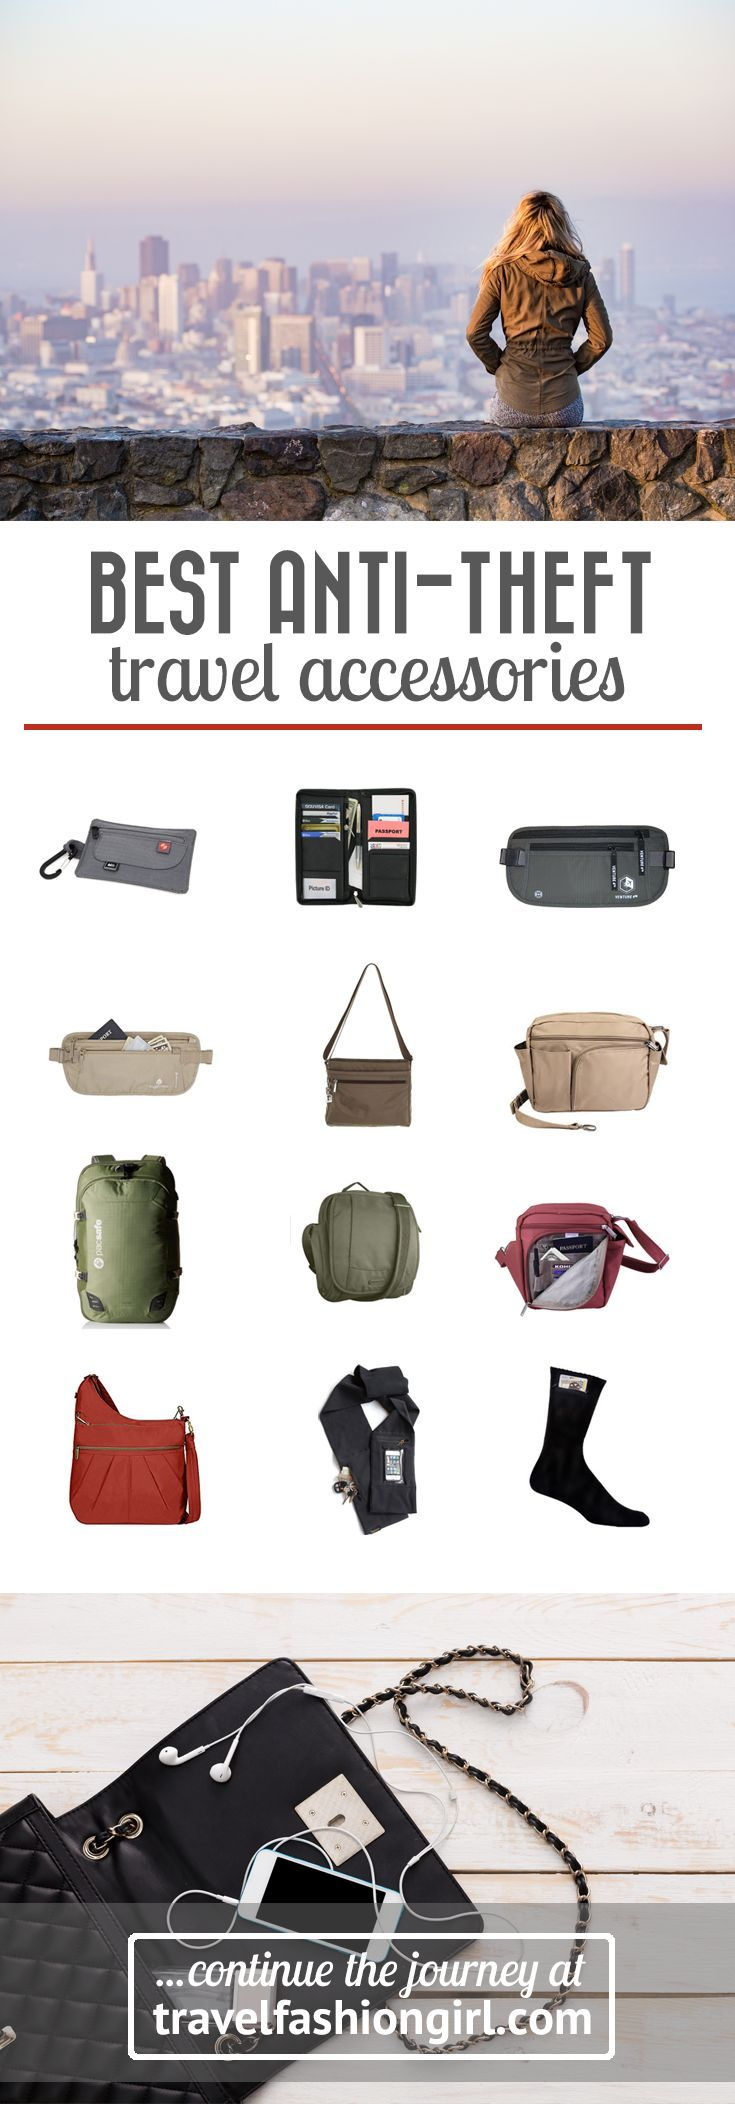 Safety is a big concern for travelers, no matter the destination or the length of the journey. /travlfashngirl/ has the best anti-theft accessories and bags for your travels. | http://travelfashiongirl.com